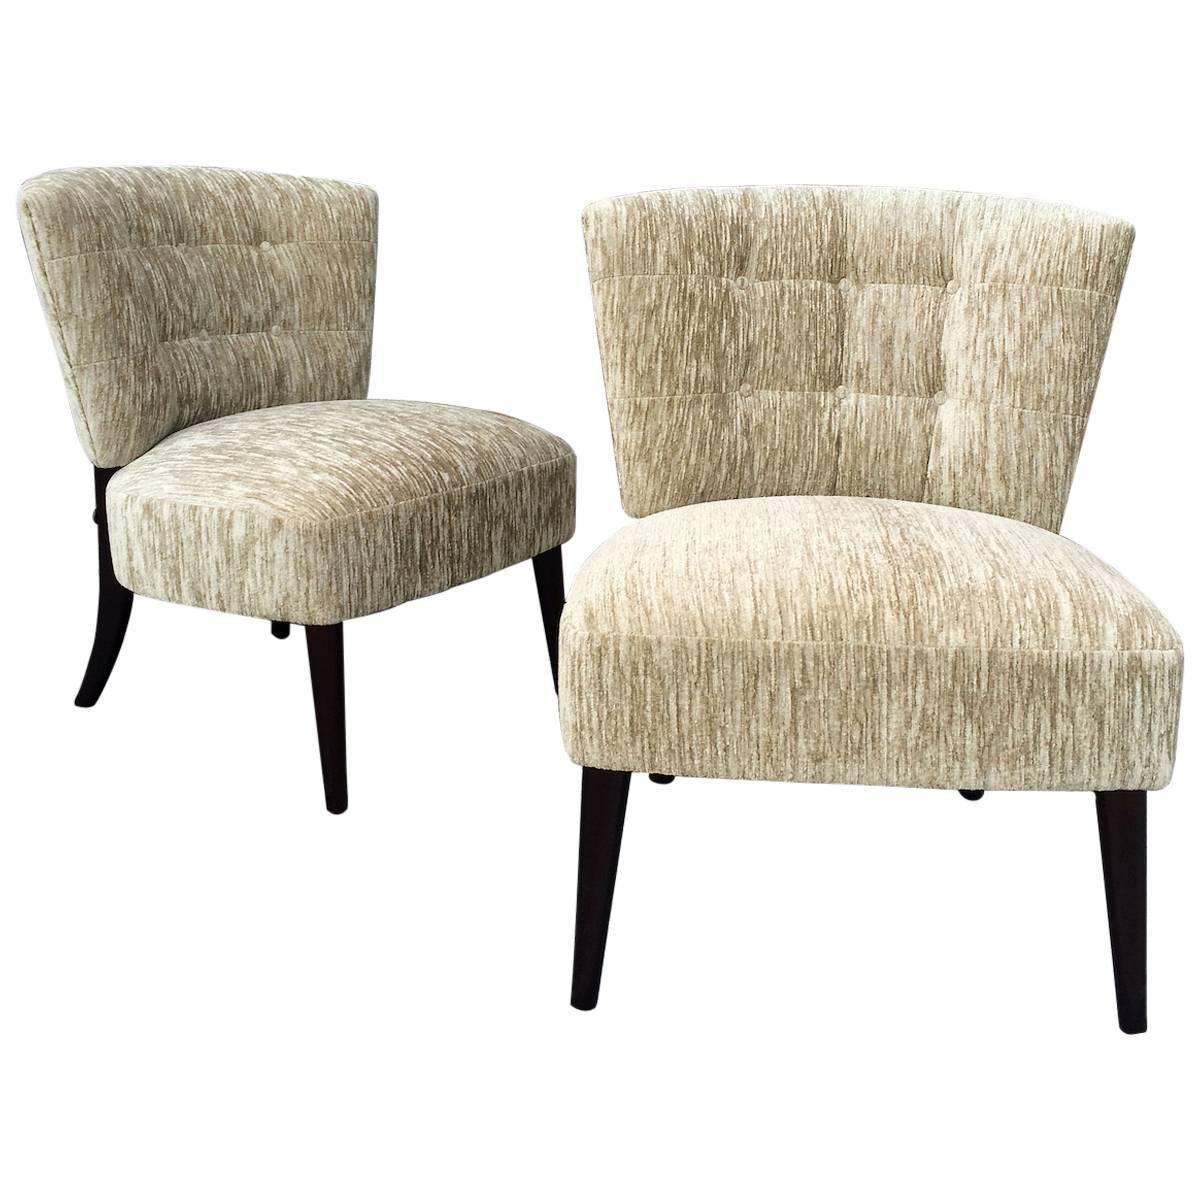 grosfeld chairs unique house pin fan regency from collection back vintage asymmetrical hollywood furniture a